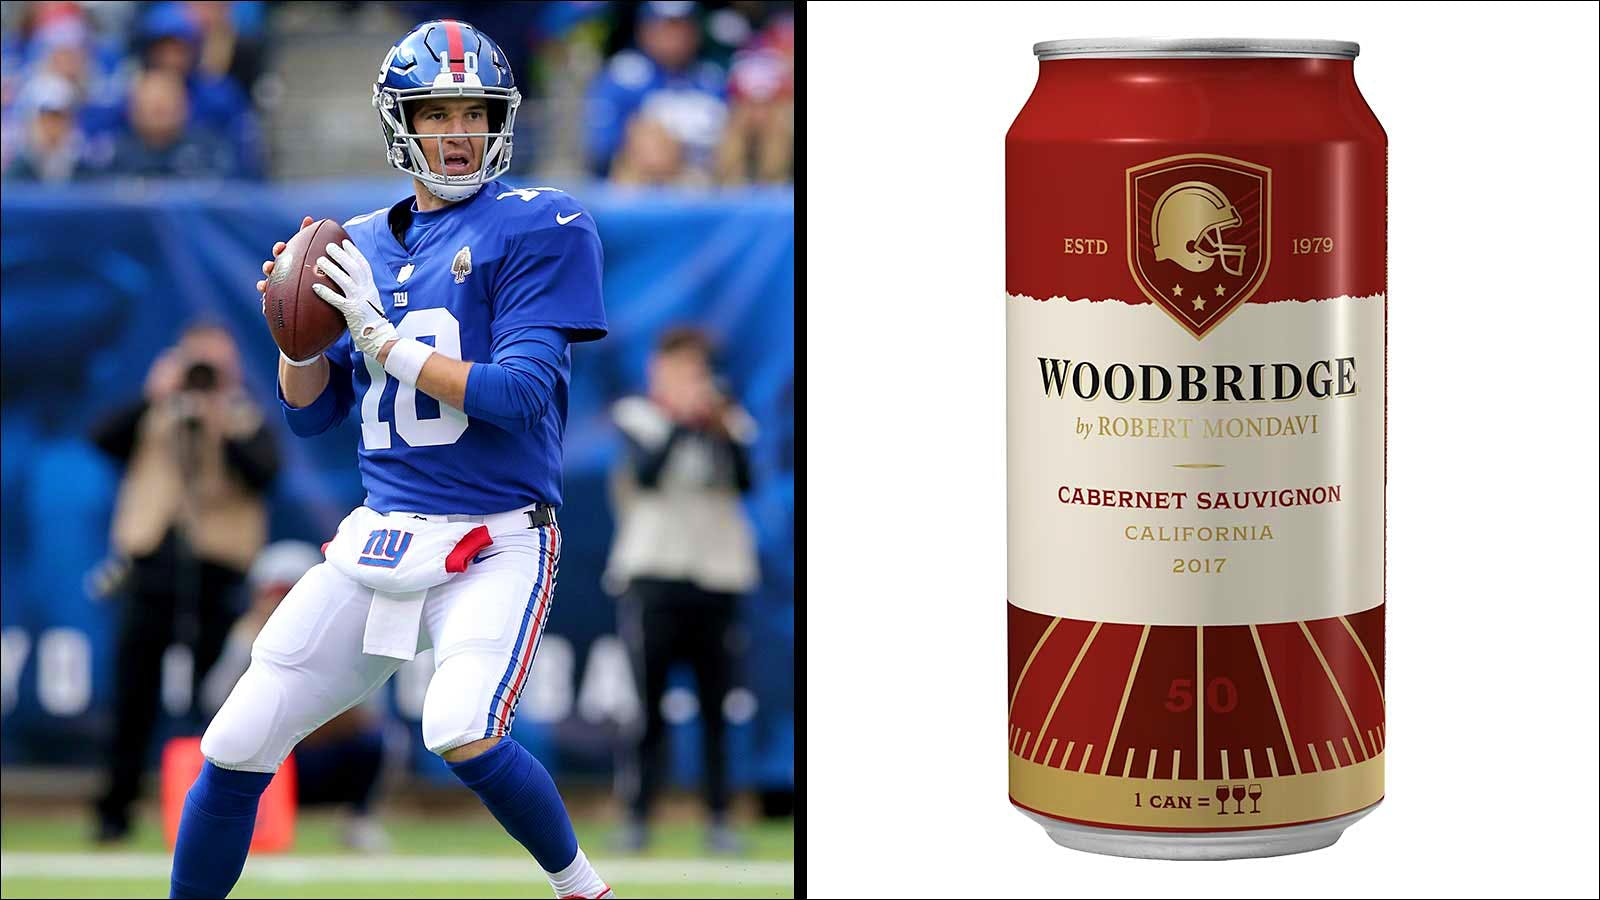 Woodbridge Cabernet Cans Coming to Giants, Rams and Bears